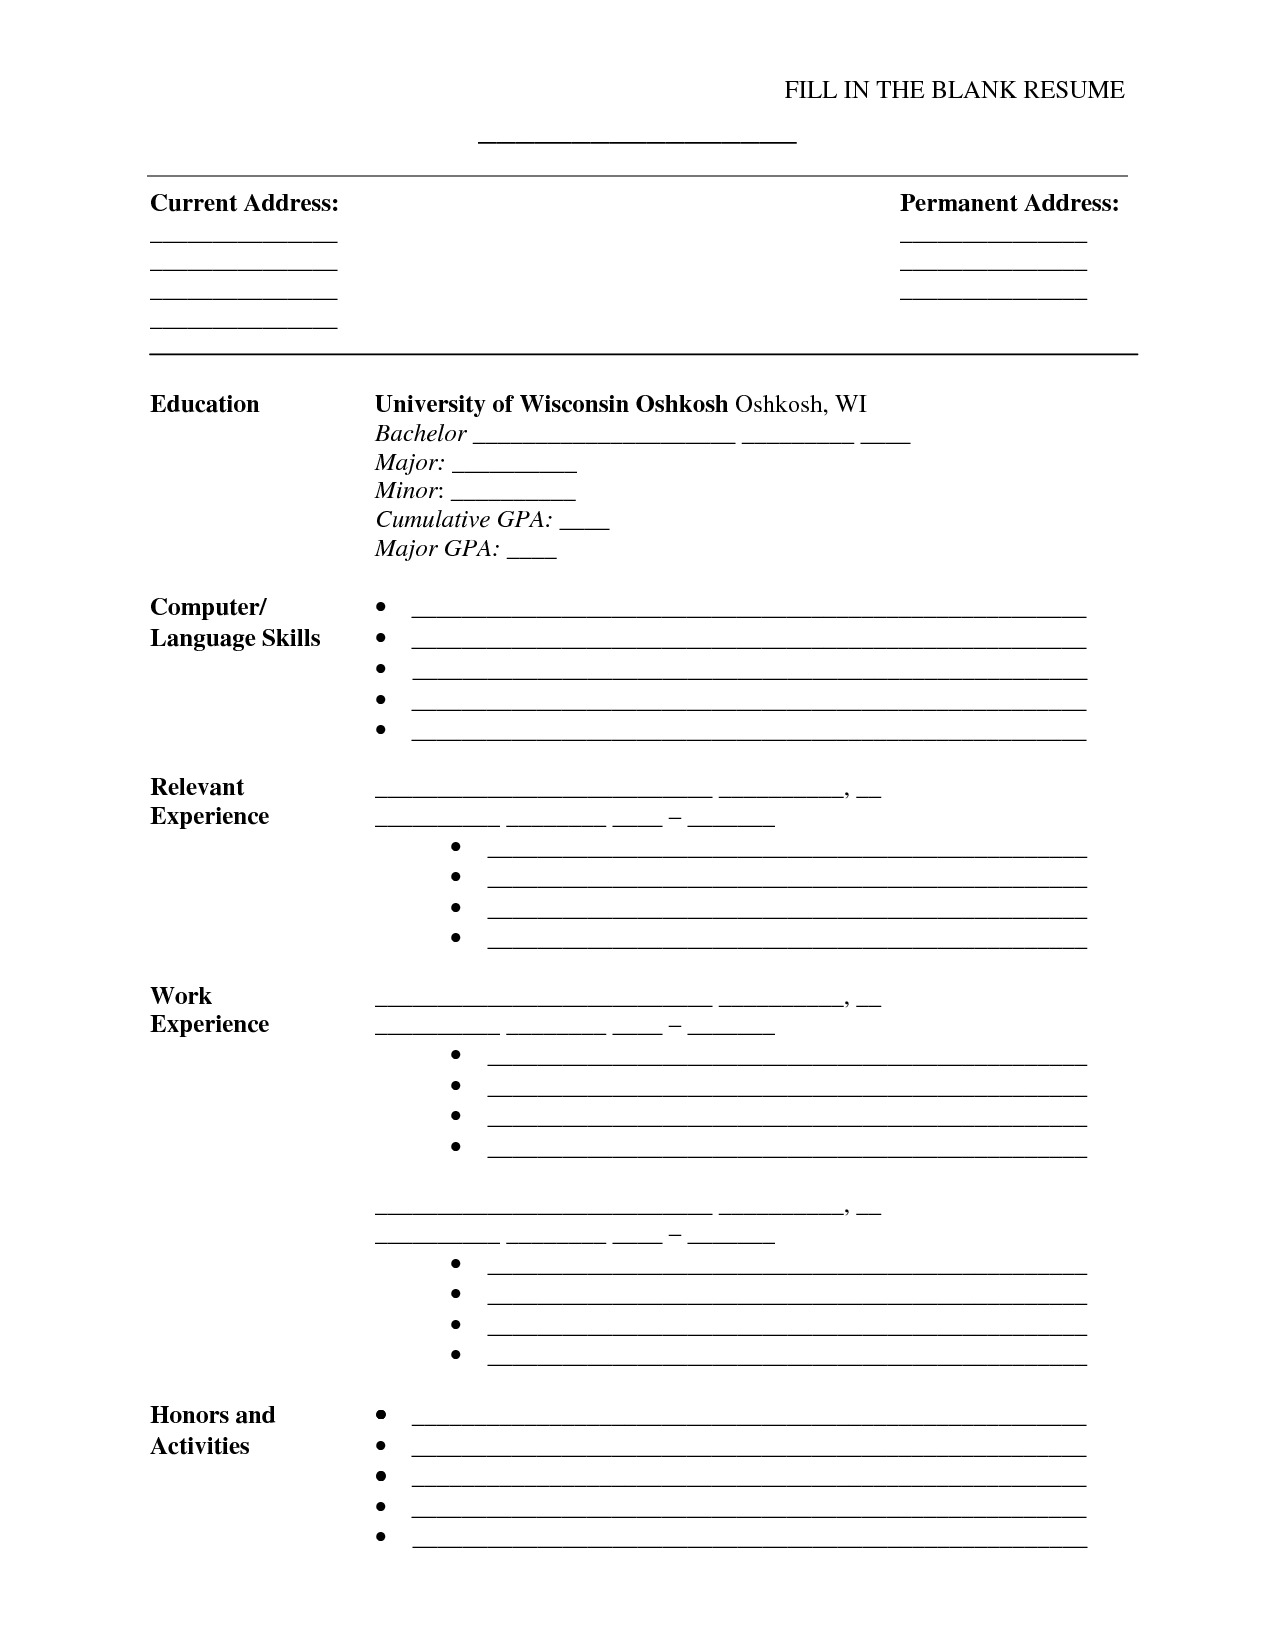 Quality Control Auditor Sample Resume Resume : Summary Of Qualification In  Resume Cv Layouts Free Resume .  Free Resume Forms